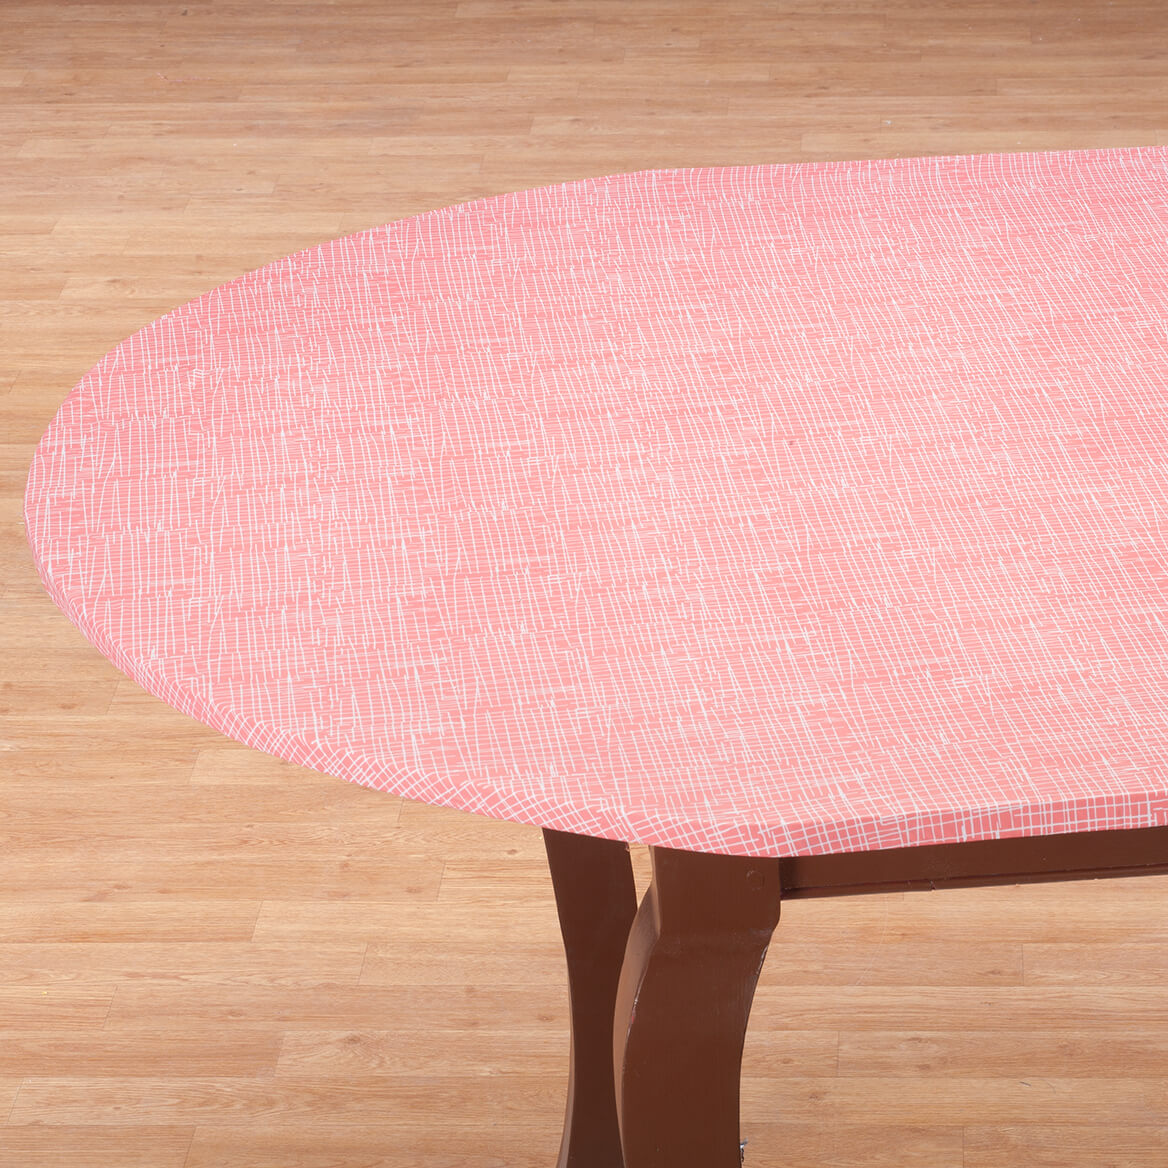 Straw Elastic Round Table Cover-367000